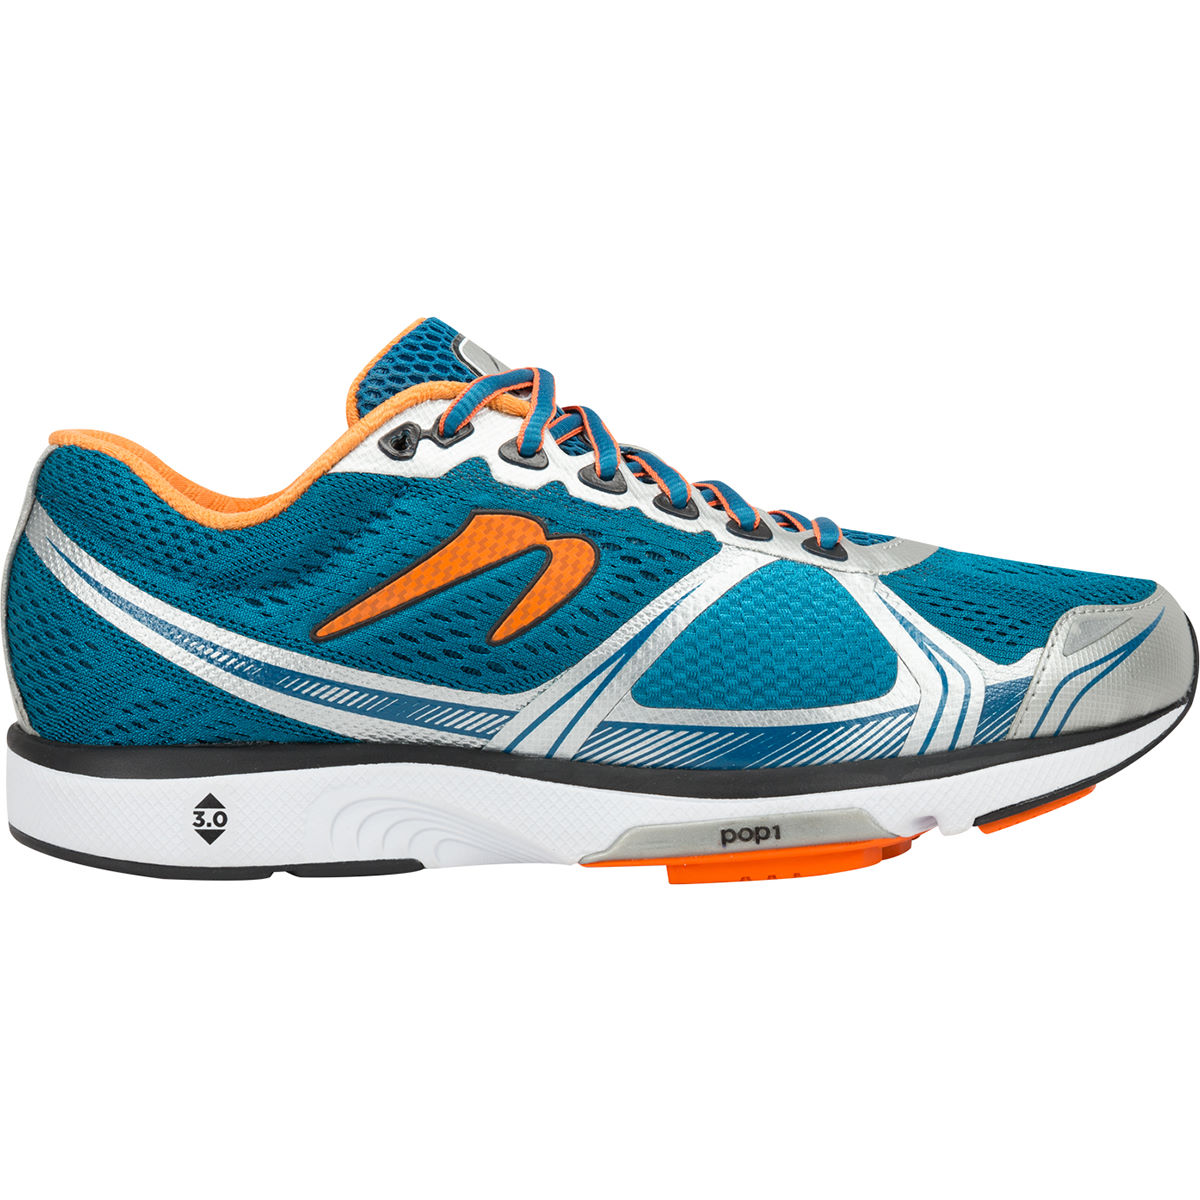 Chaussures Newton Running Shoes Motion VI - 9 UK Bleu